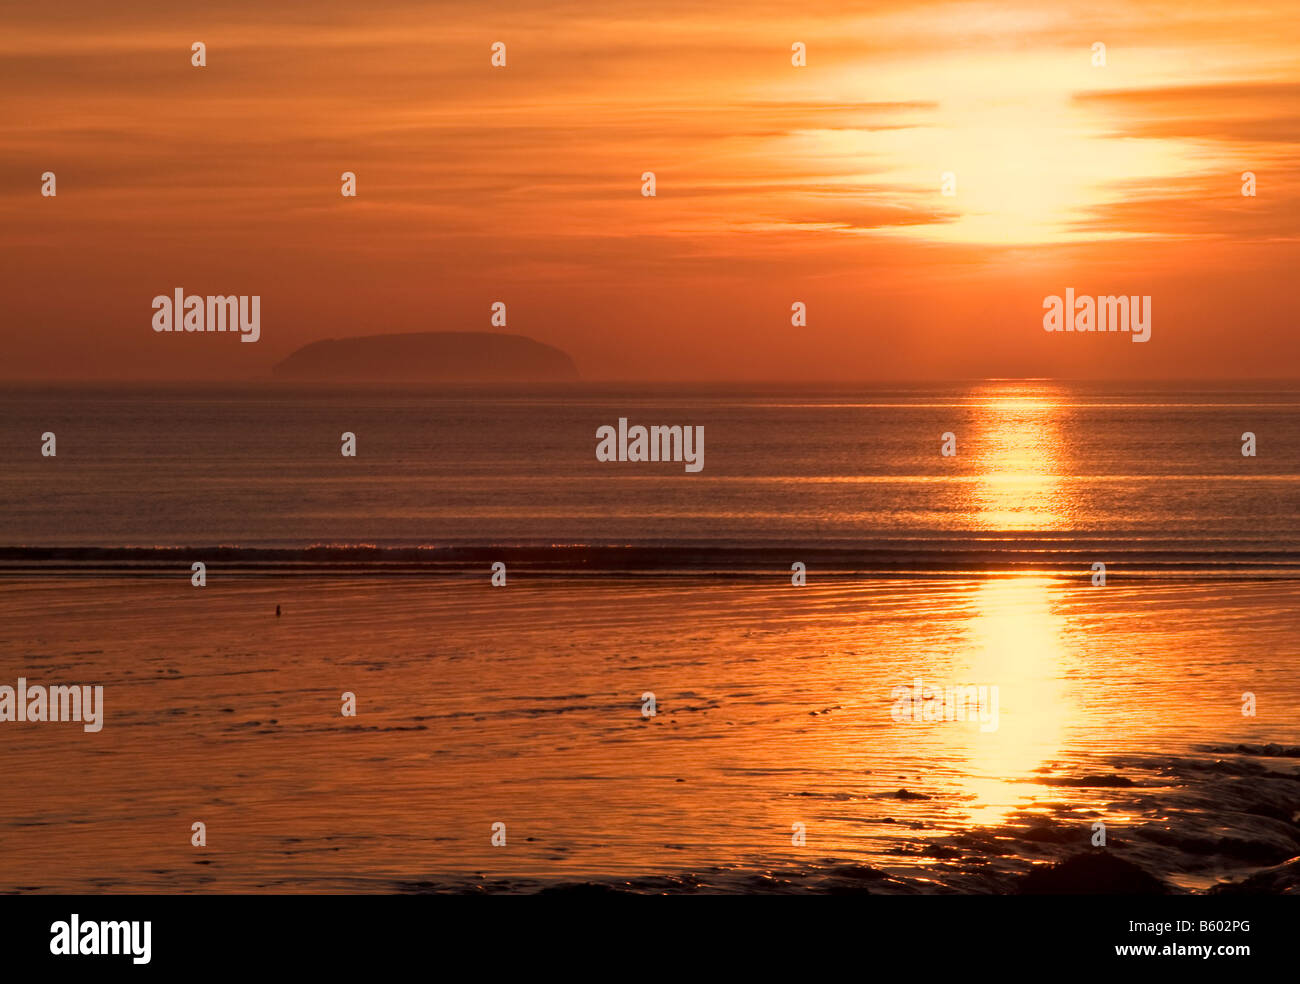 Vivid orange sunset taken from the mudflats at Sandpoint near Weston Super Mare with Steepholm Island visible on - Stock Image